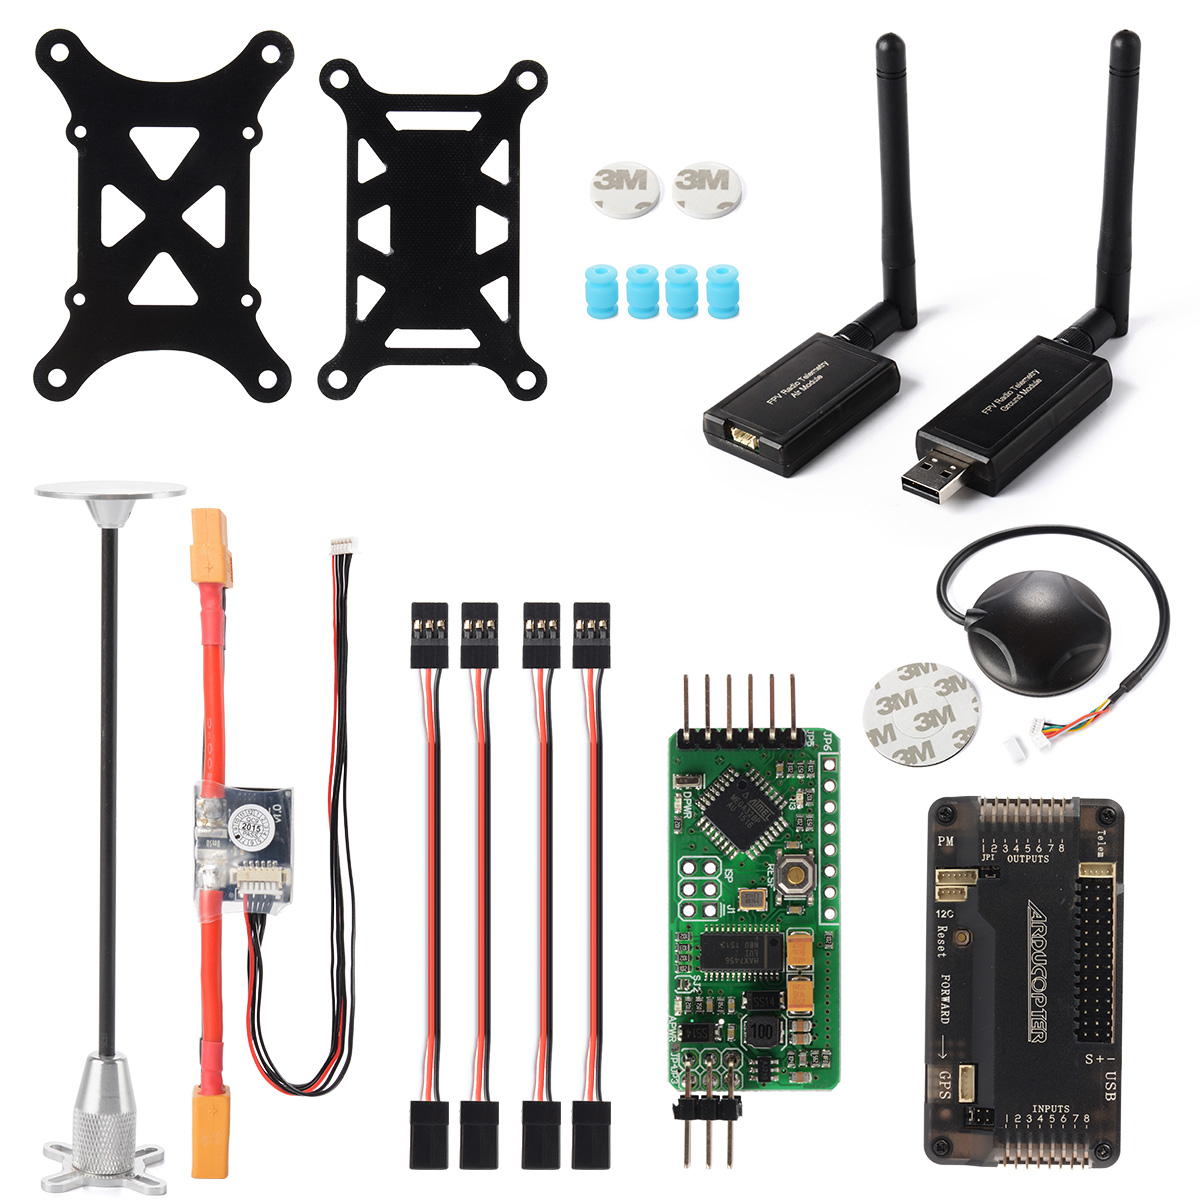 APM2.8 ArduPilot Flight Controller Ublox Neo-6M GPS OSD 915Mhz Telemetry RC150 minimosd on screen display osd board apm telemetry to apm 1 and apm 2